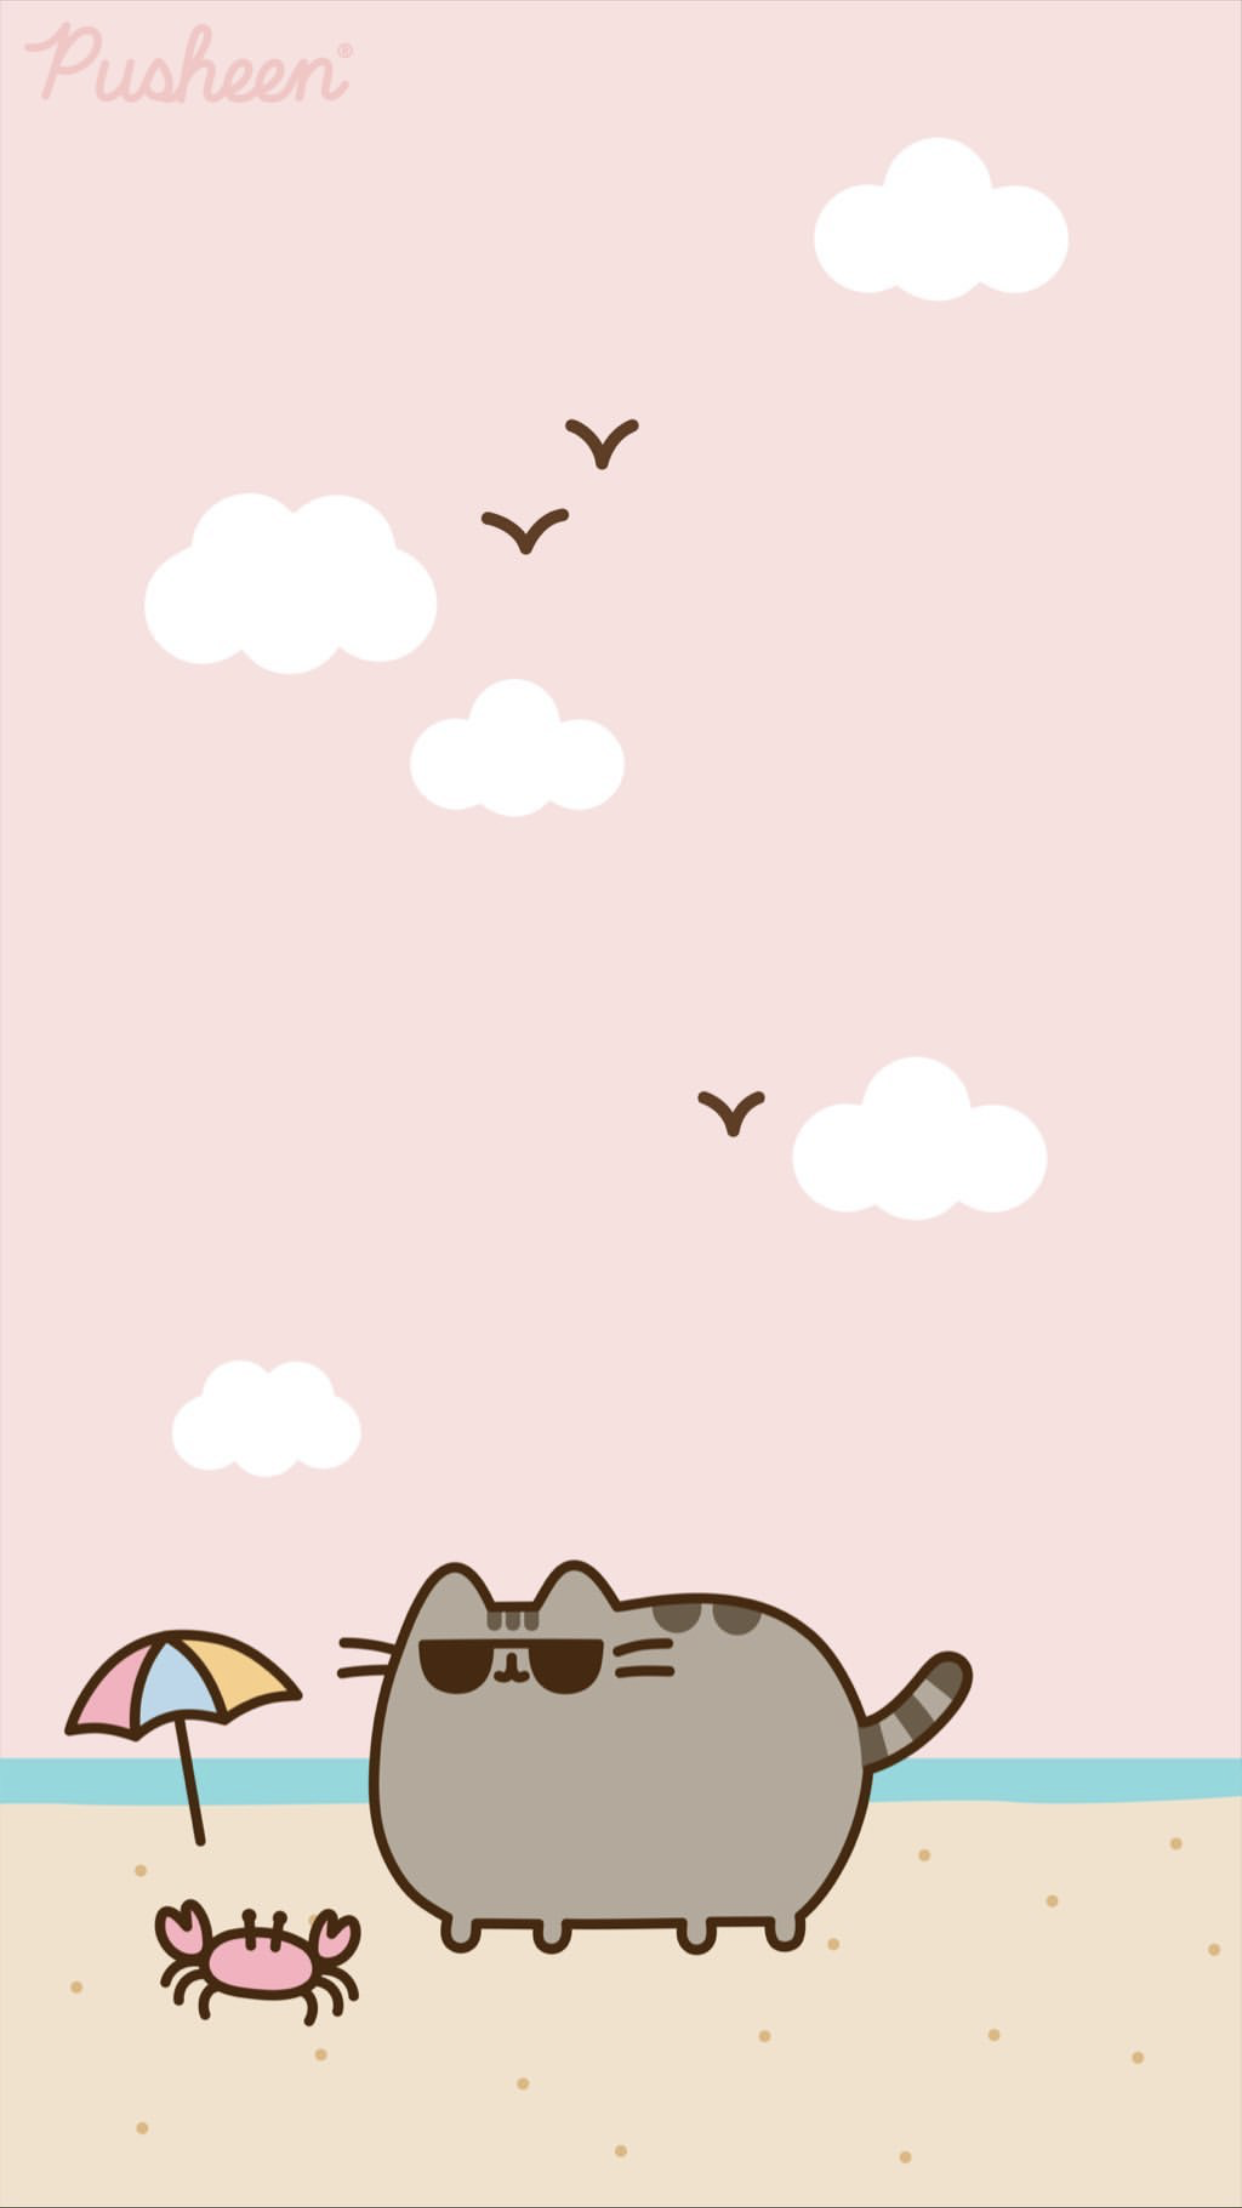 Pusheen Cat Iphone Wallpaper Summer Beach Pusheen Cute Pusheen Cat Cat Wallpaper